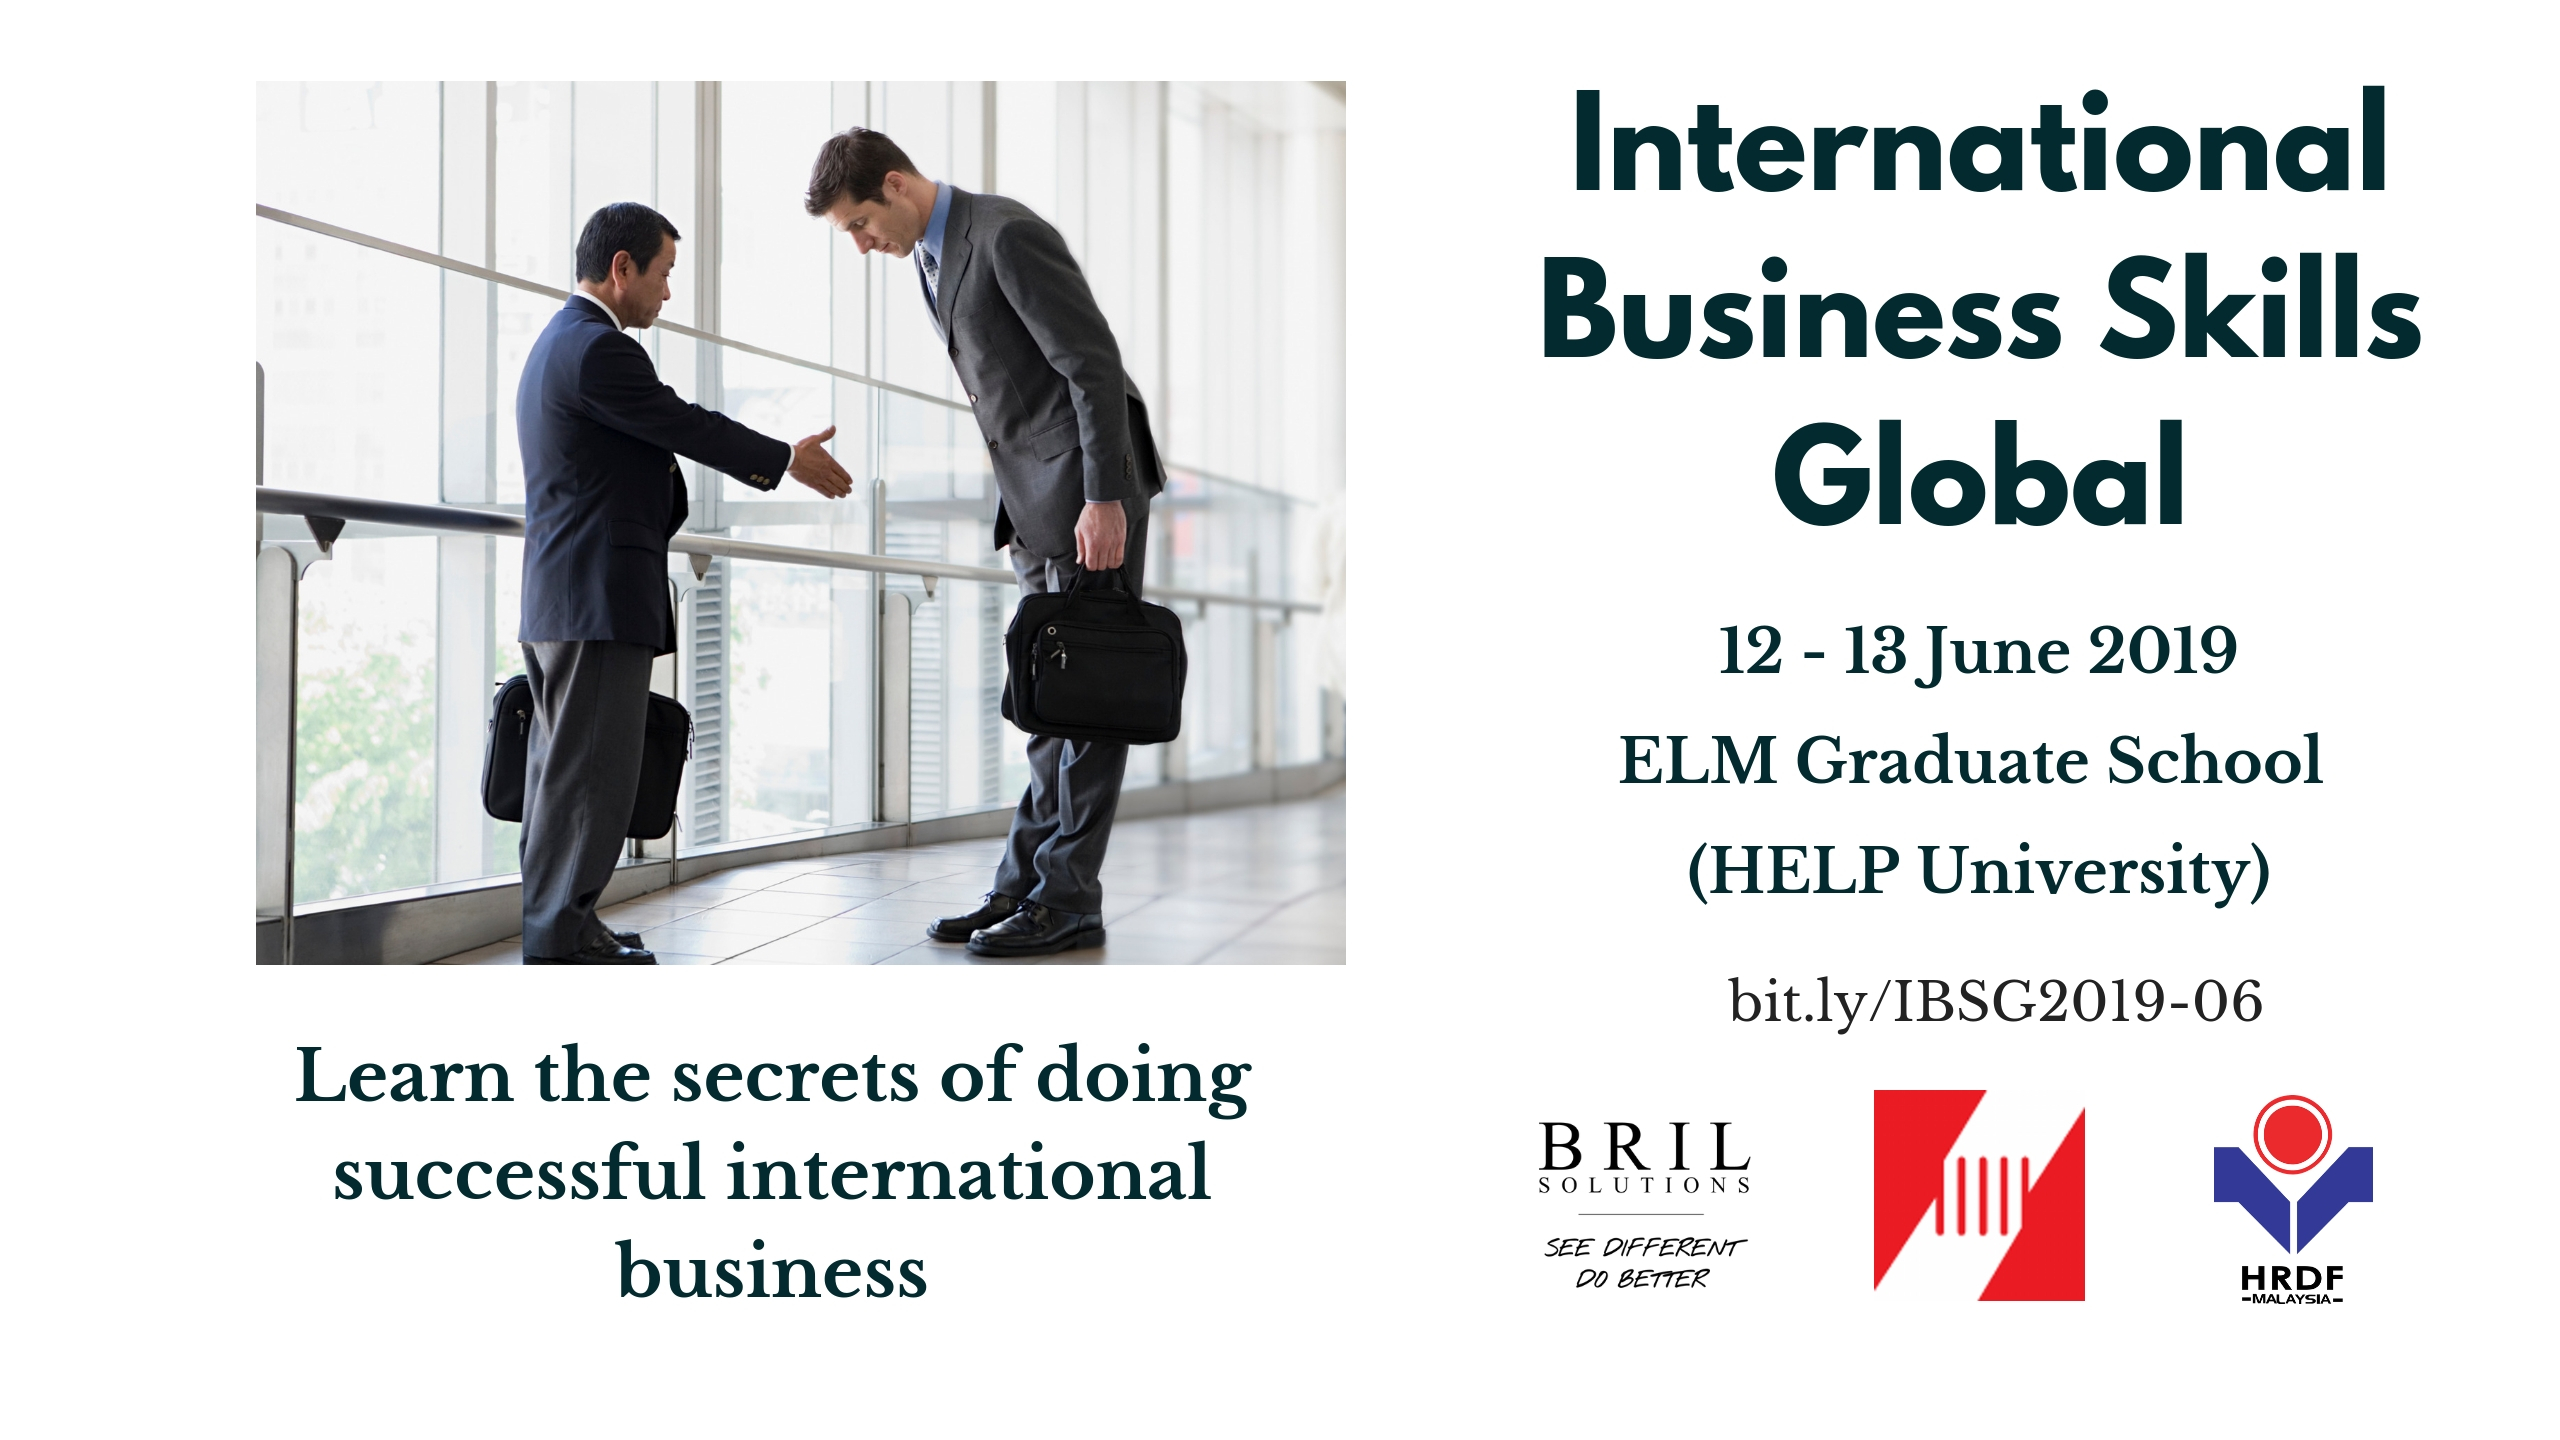 Doing international business, intercultural business skills